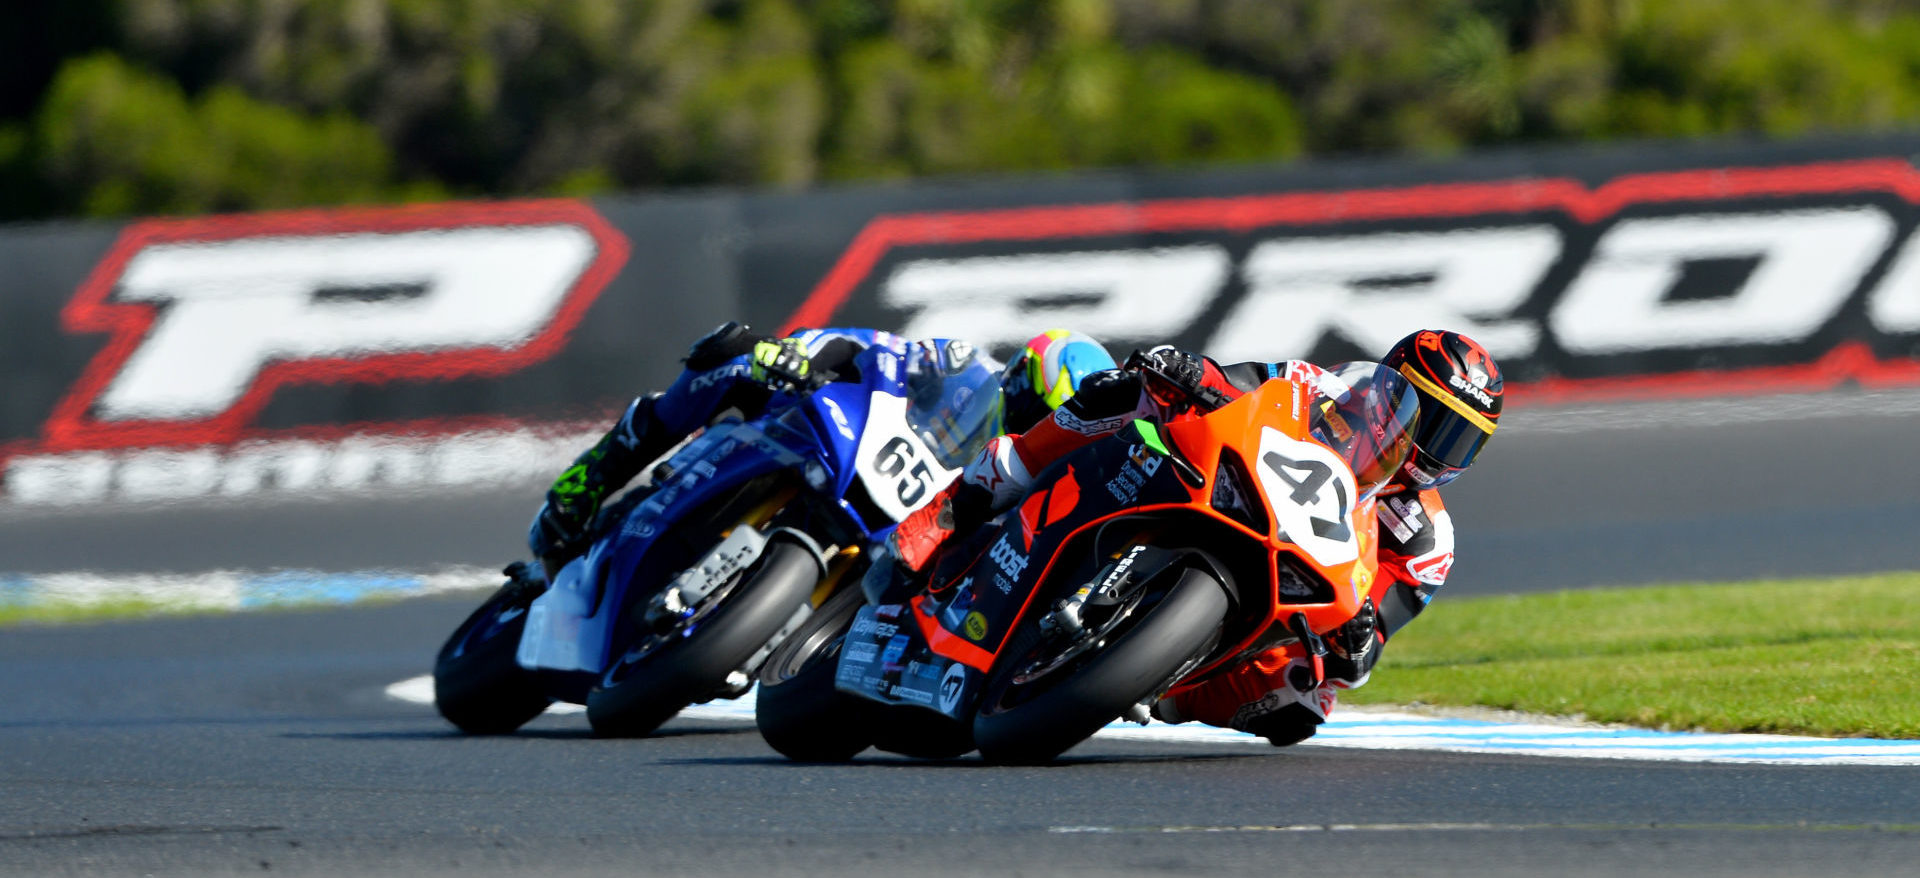 Wayne Maxwell (47) and Cru Halliday (65) in action during the opening round of the 2020 Australian Superbike Championship at Phillip Island. Photo by Russell Colvin, courtesy of Motorcycling Australia.